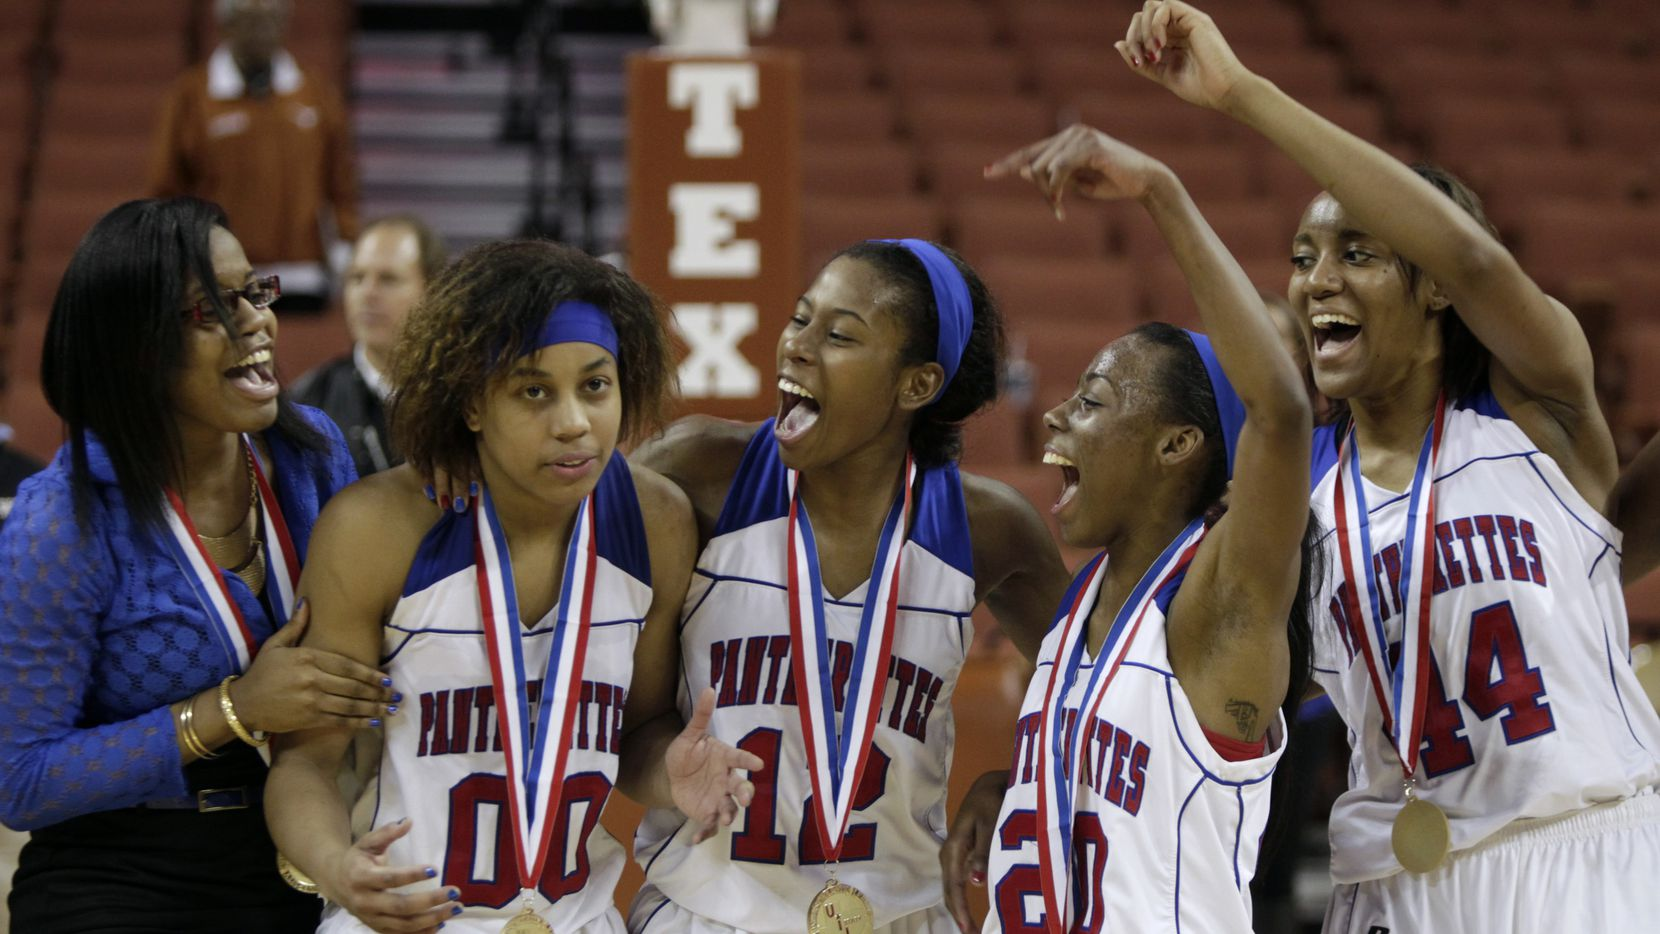 3/2/13  - Duncanville's Kiara Perry (00) is cheered on by her teammates after being announced the 5A Girls MVP in the Pantherettes victory over Cibolo Steele in the UIL Girls 5A state basketball championship in Austin, Texas March 2, 2013. (Erich Schlegel/Special Contributor)